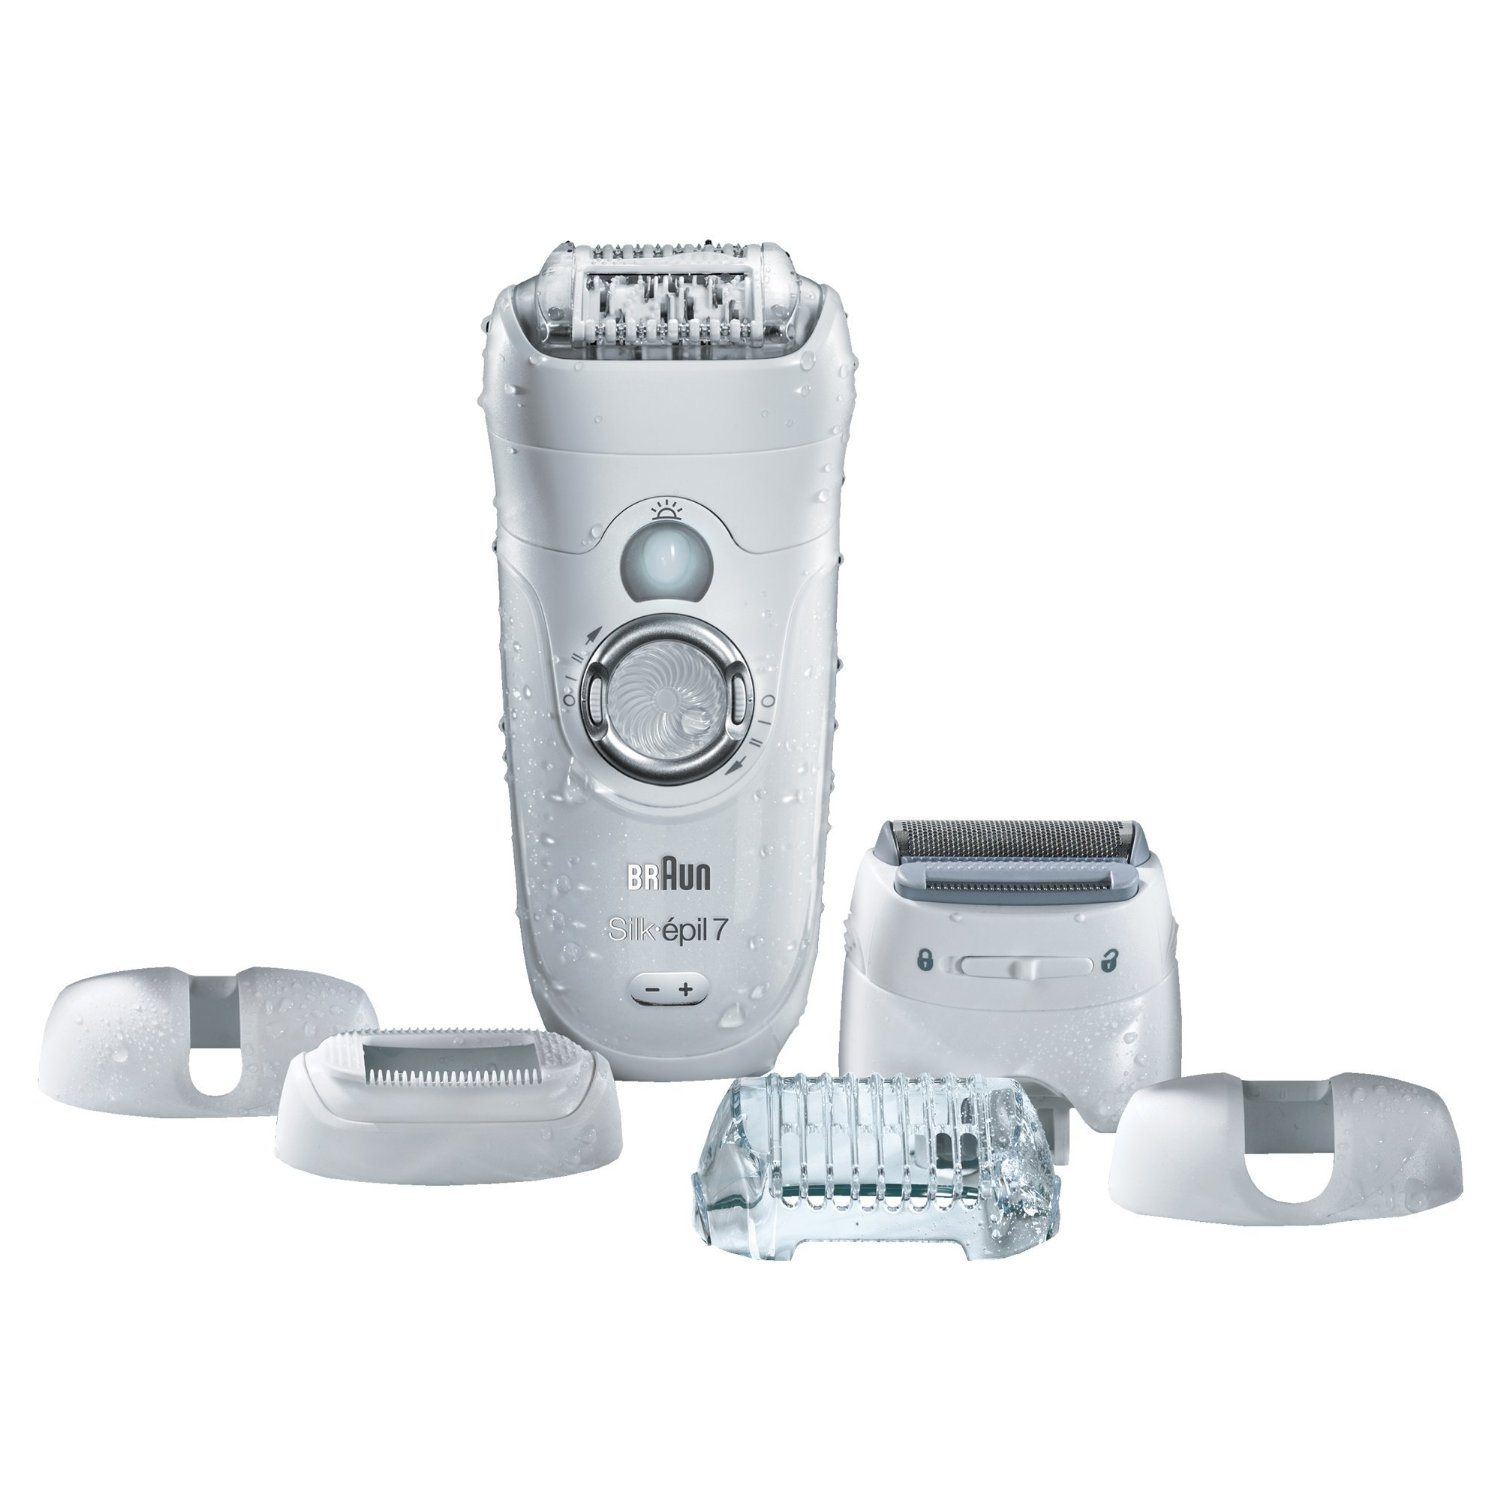 braun-silk-epil-7-7-561-wet-dry-cordless-electric-hair-removal-epilator-ladies-electric-shaver-and-bikini-trimmer-for-women